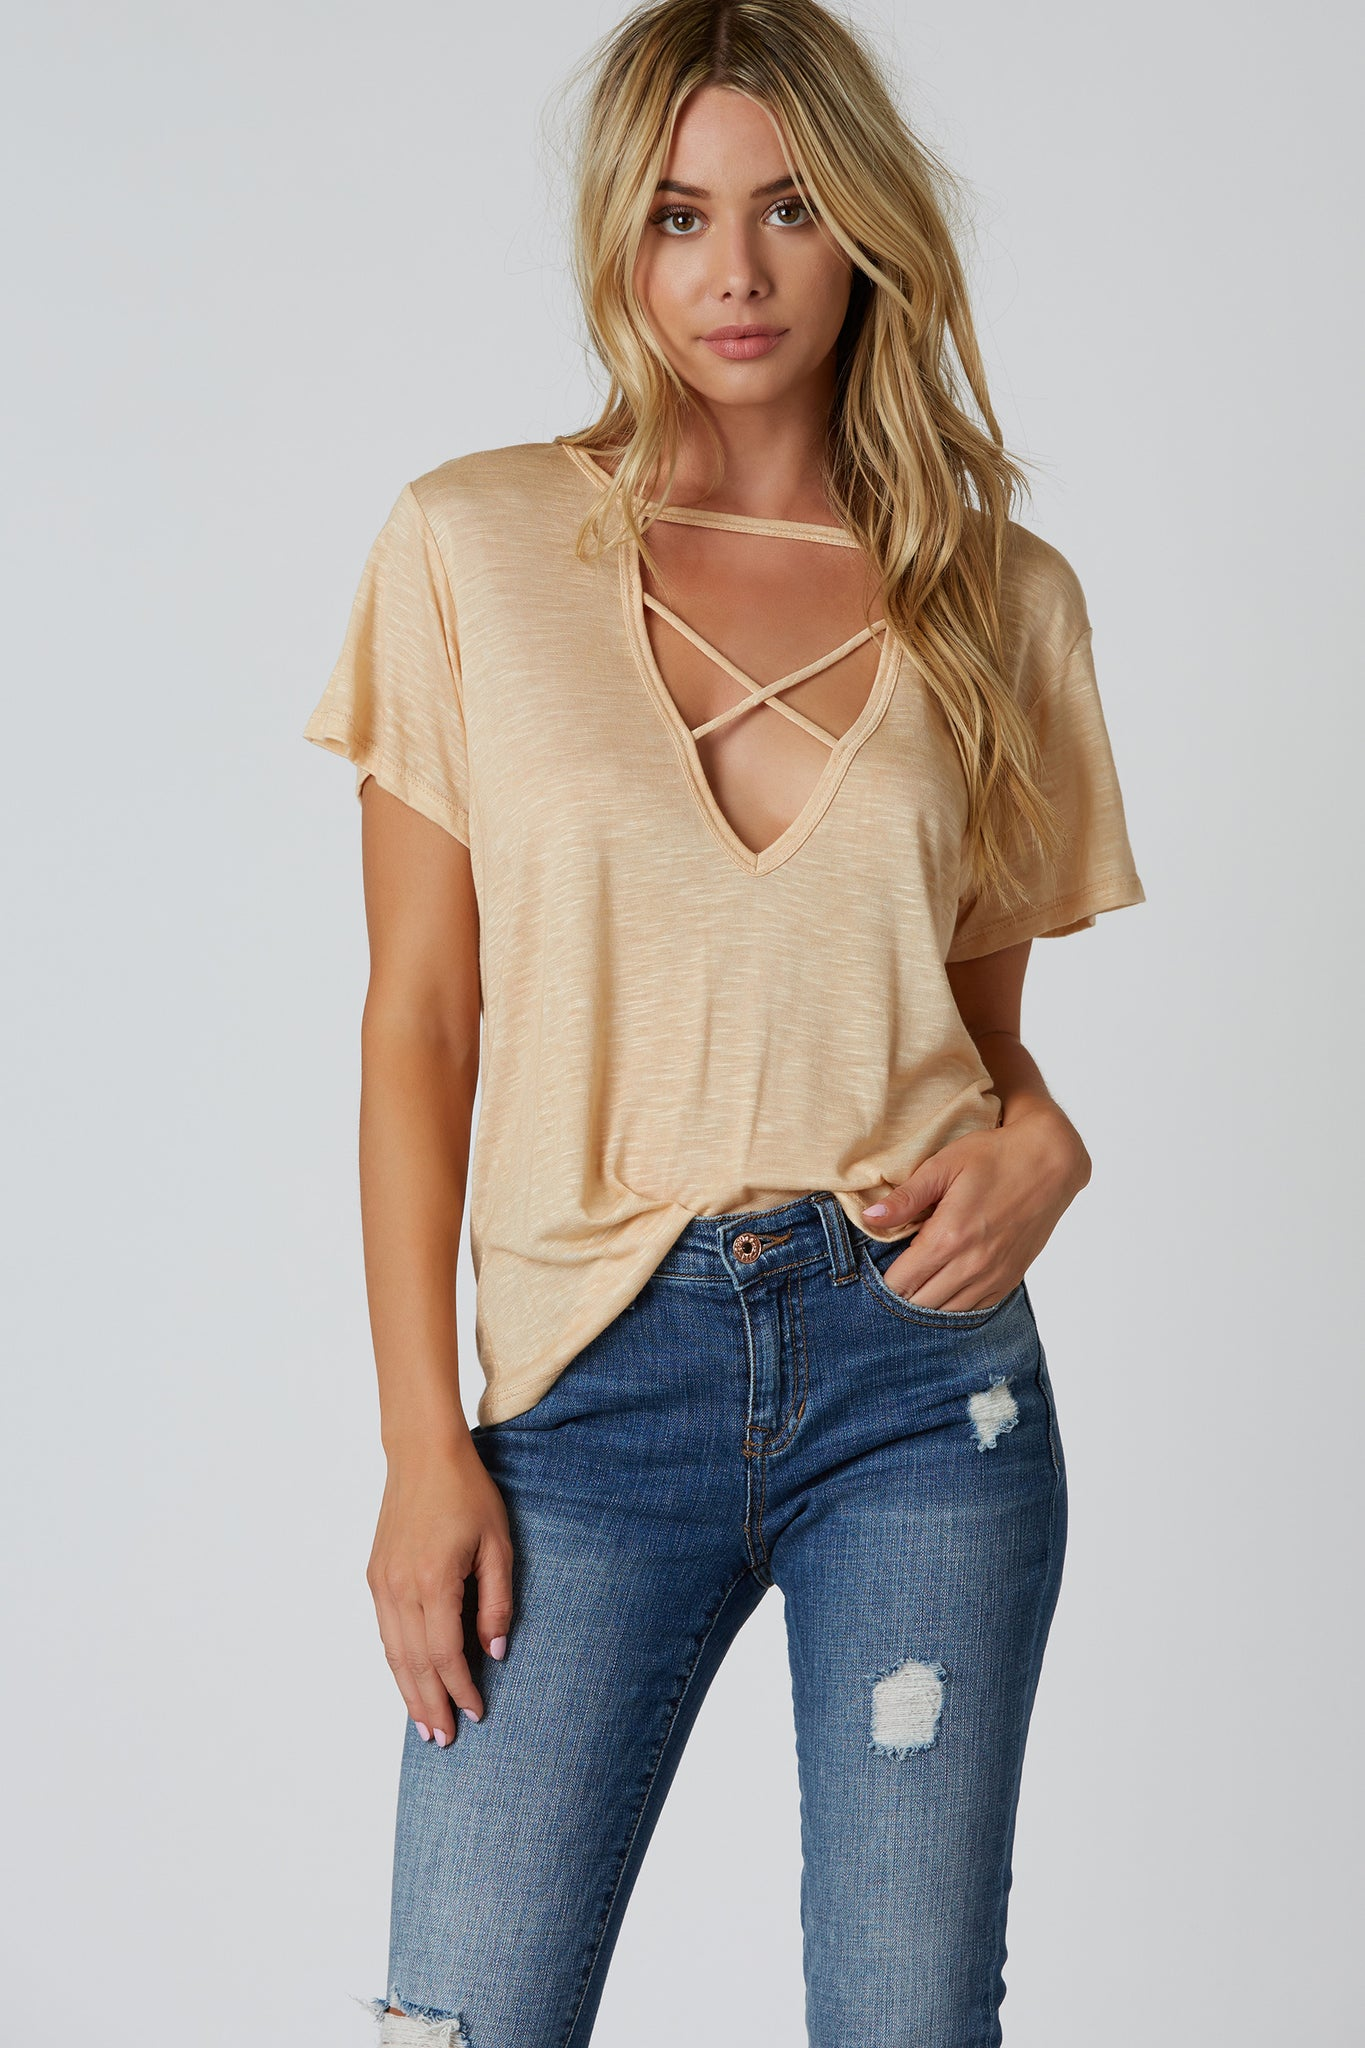 Comfortable oversized tee with deep V-shape cut out and strappy detailing. Soft lightweight material with straight hem finish.